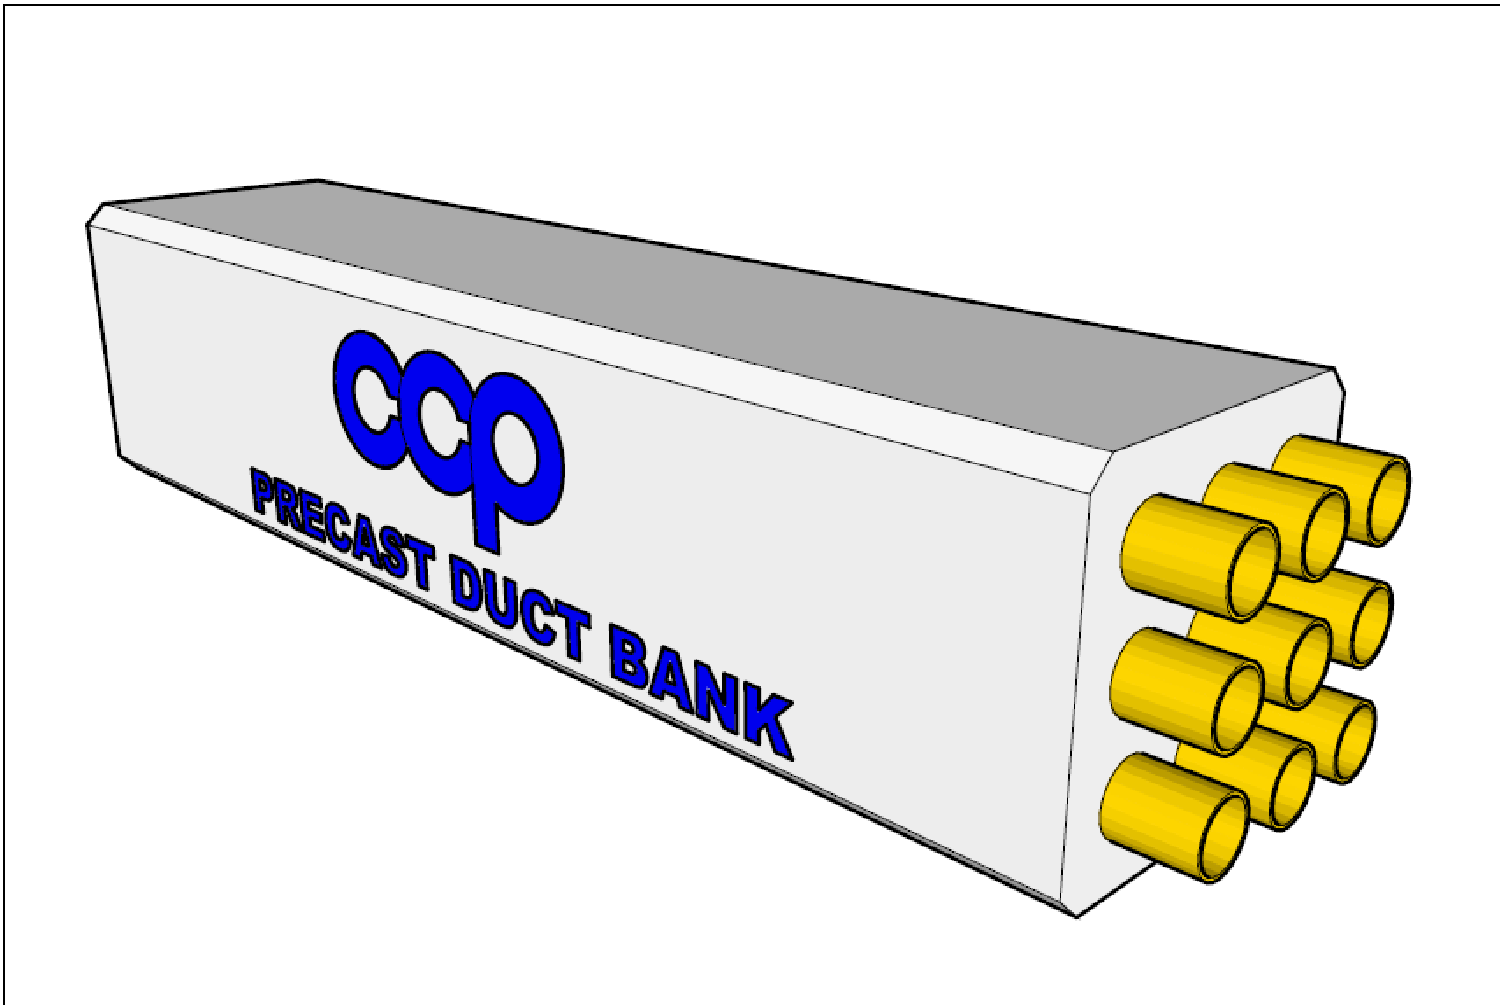 Electrical Precast Duct Bank